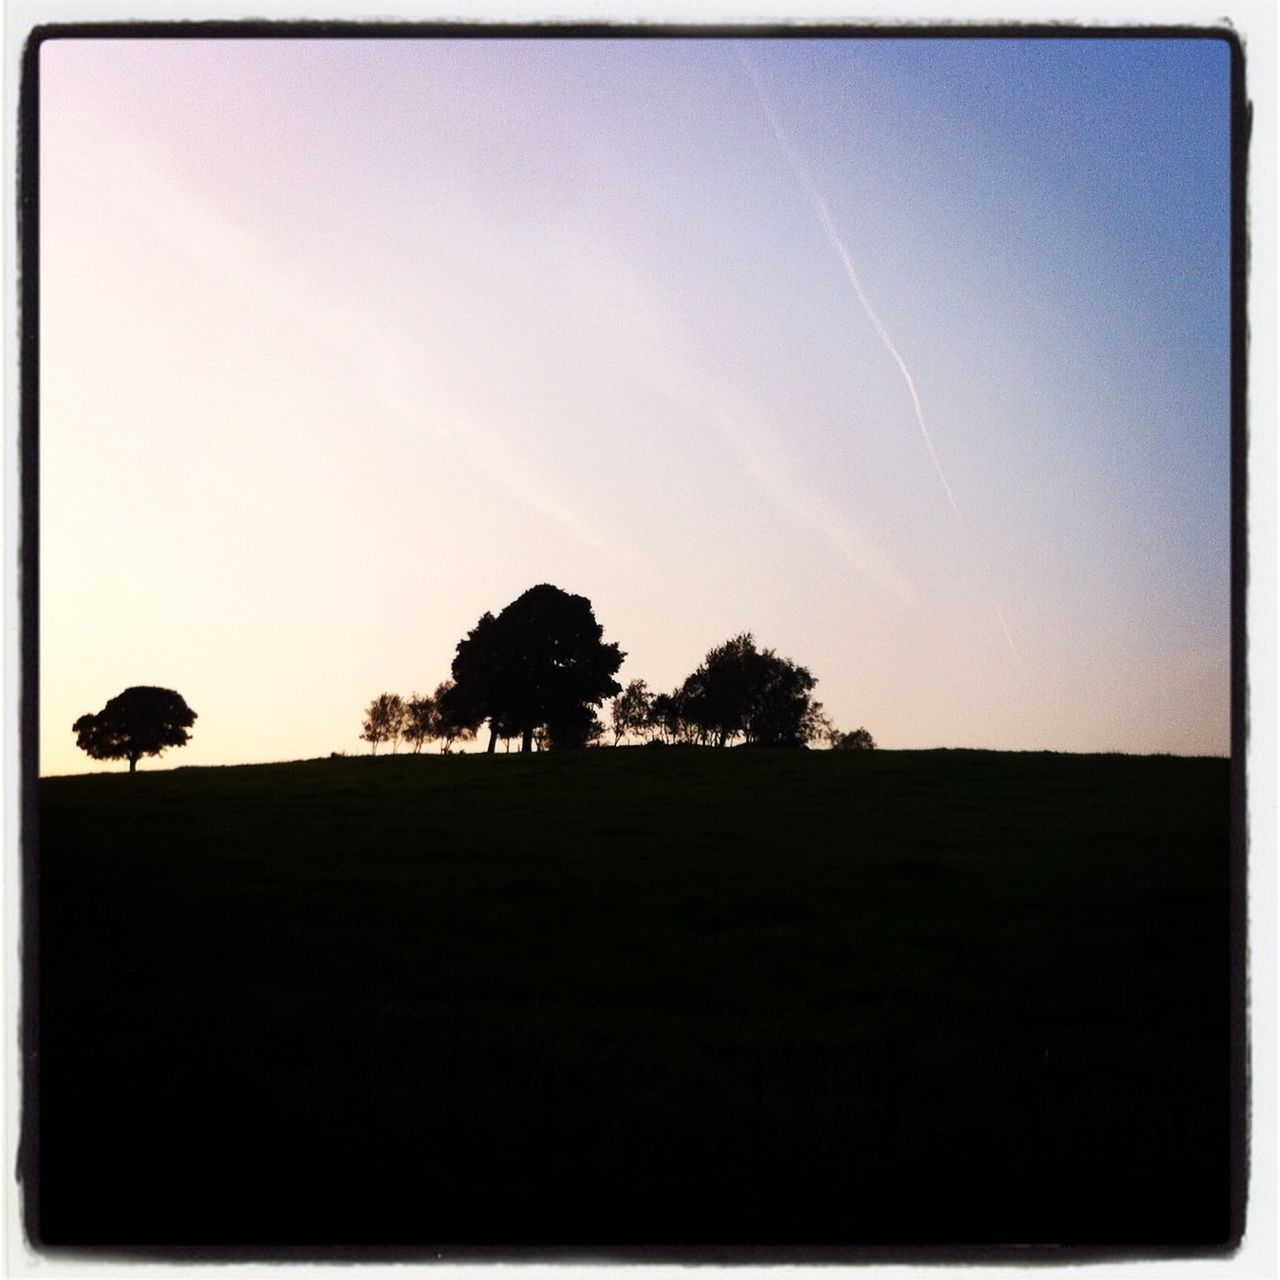 silhouette, tree, landscape, nature, field, clear sky, sunset, tranquil scene, grass, beauty in nature, tranquility, no people, sky, scenics, outdoors, animal themes, bird, day, mammal